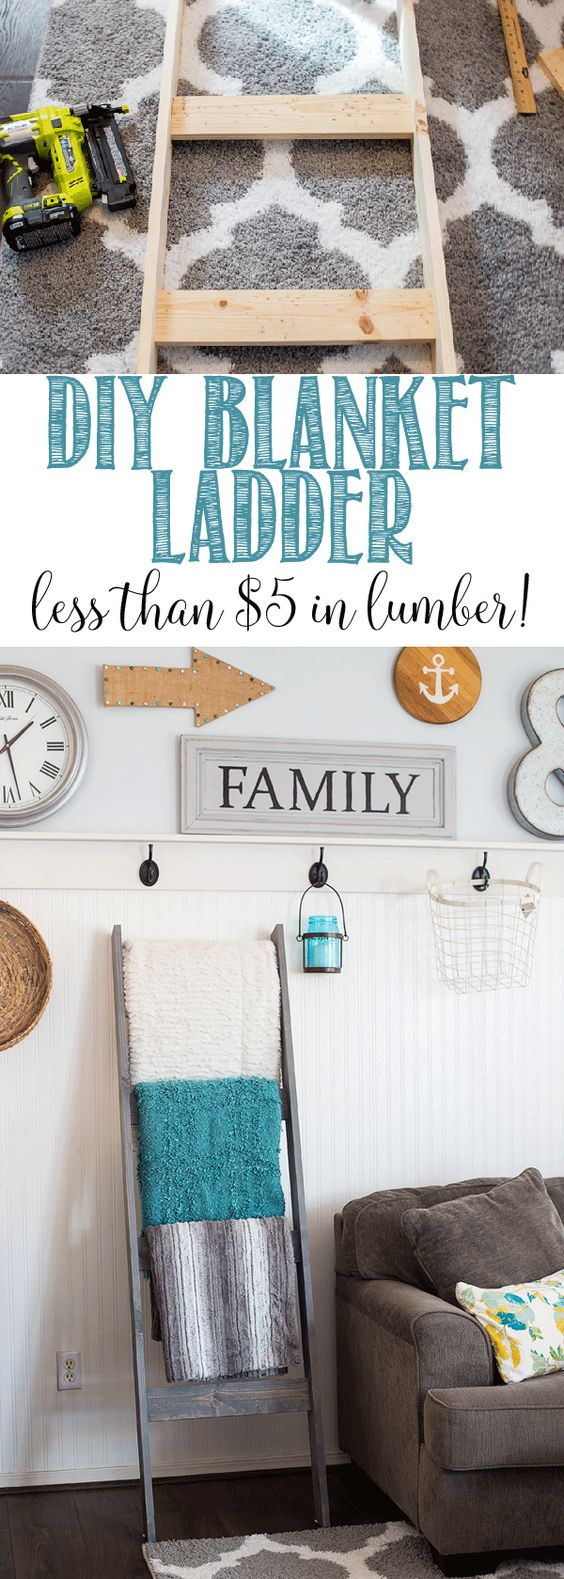 DIY Blanket Ladder for Less Than $5 in Lumber.